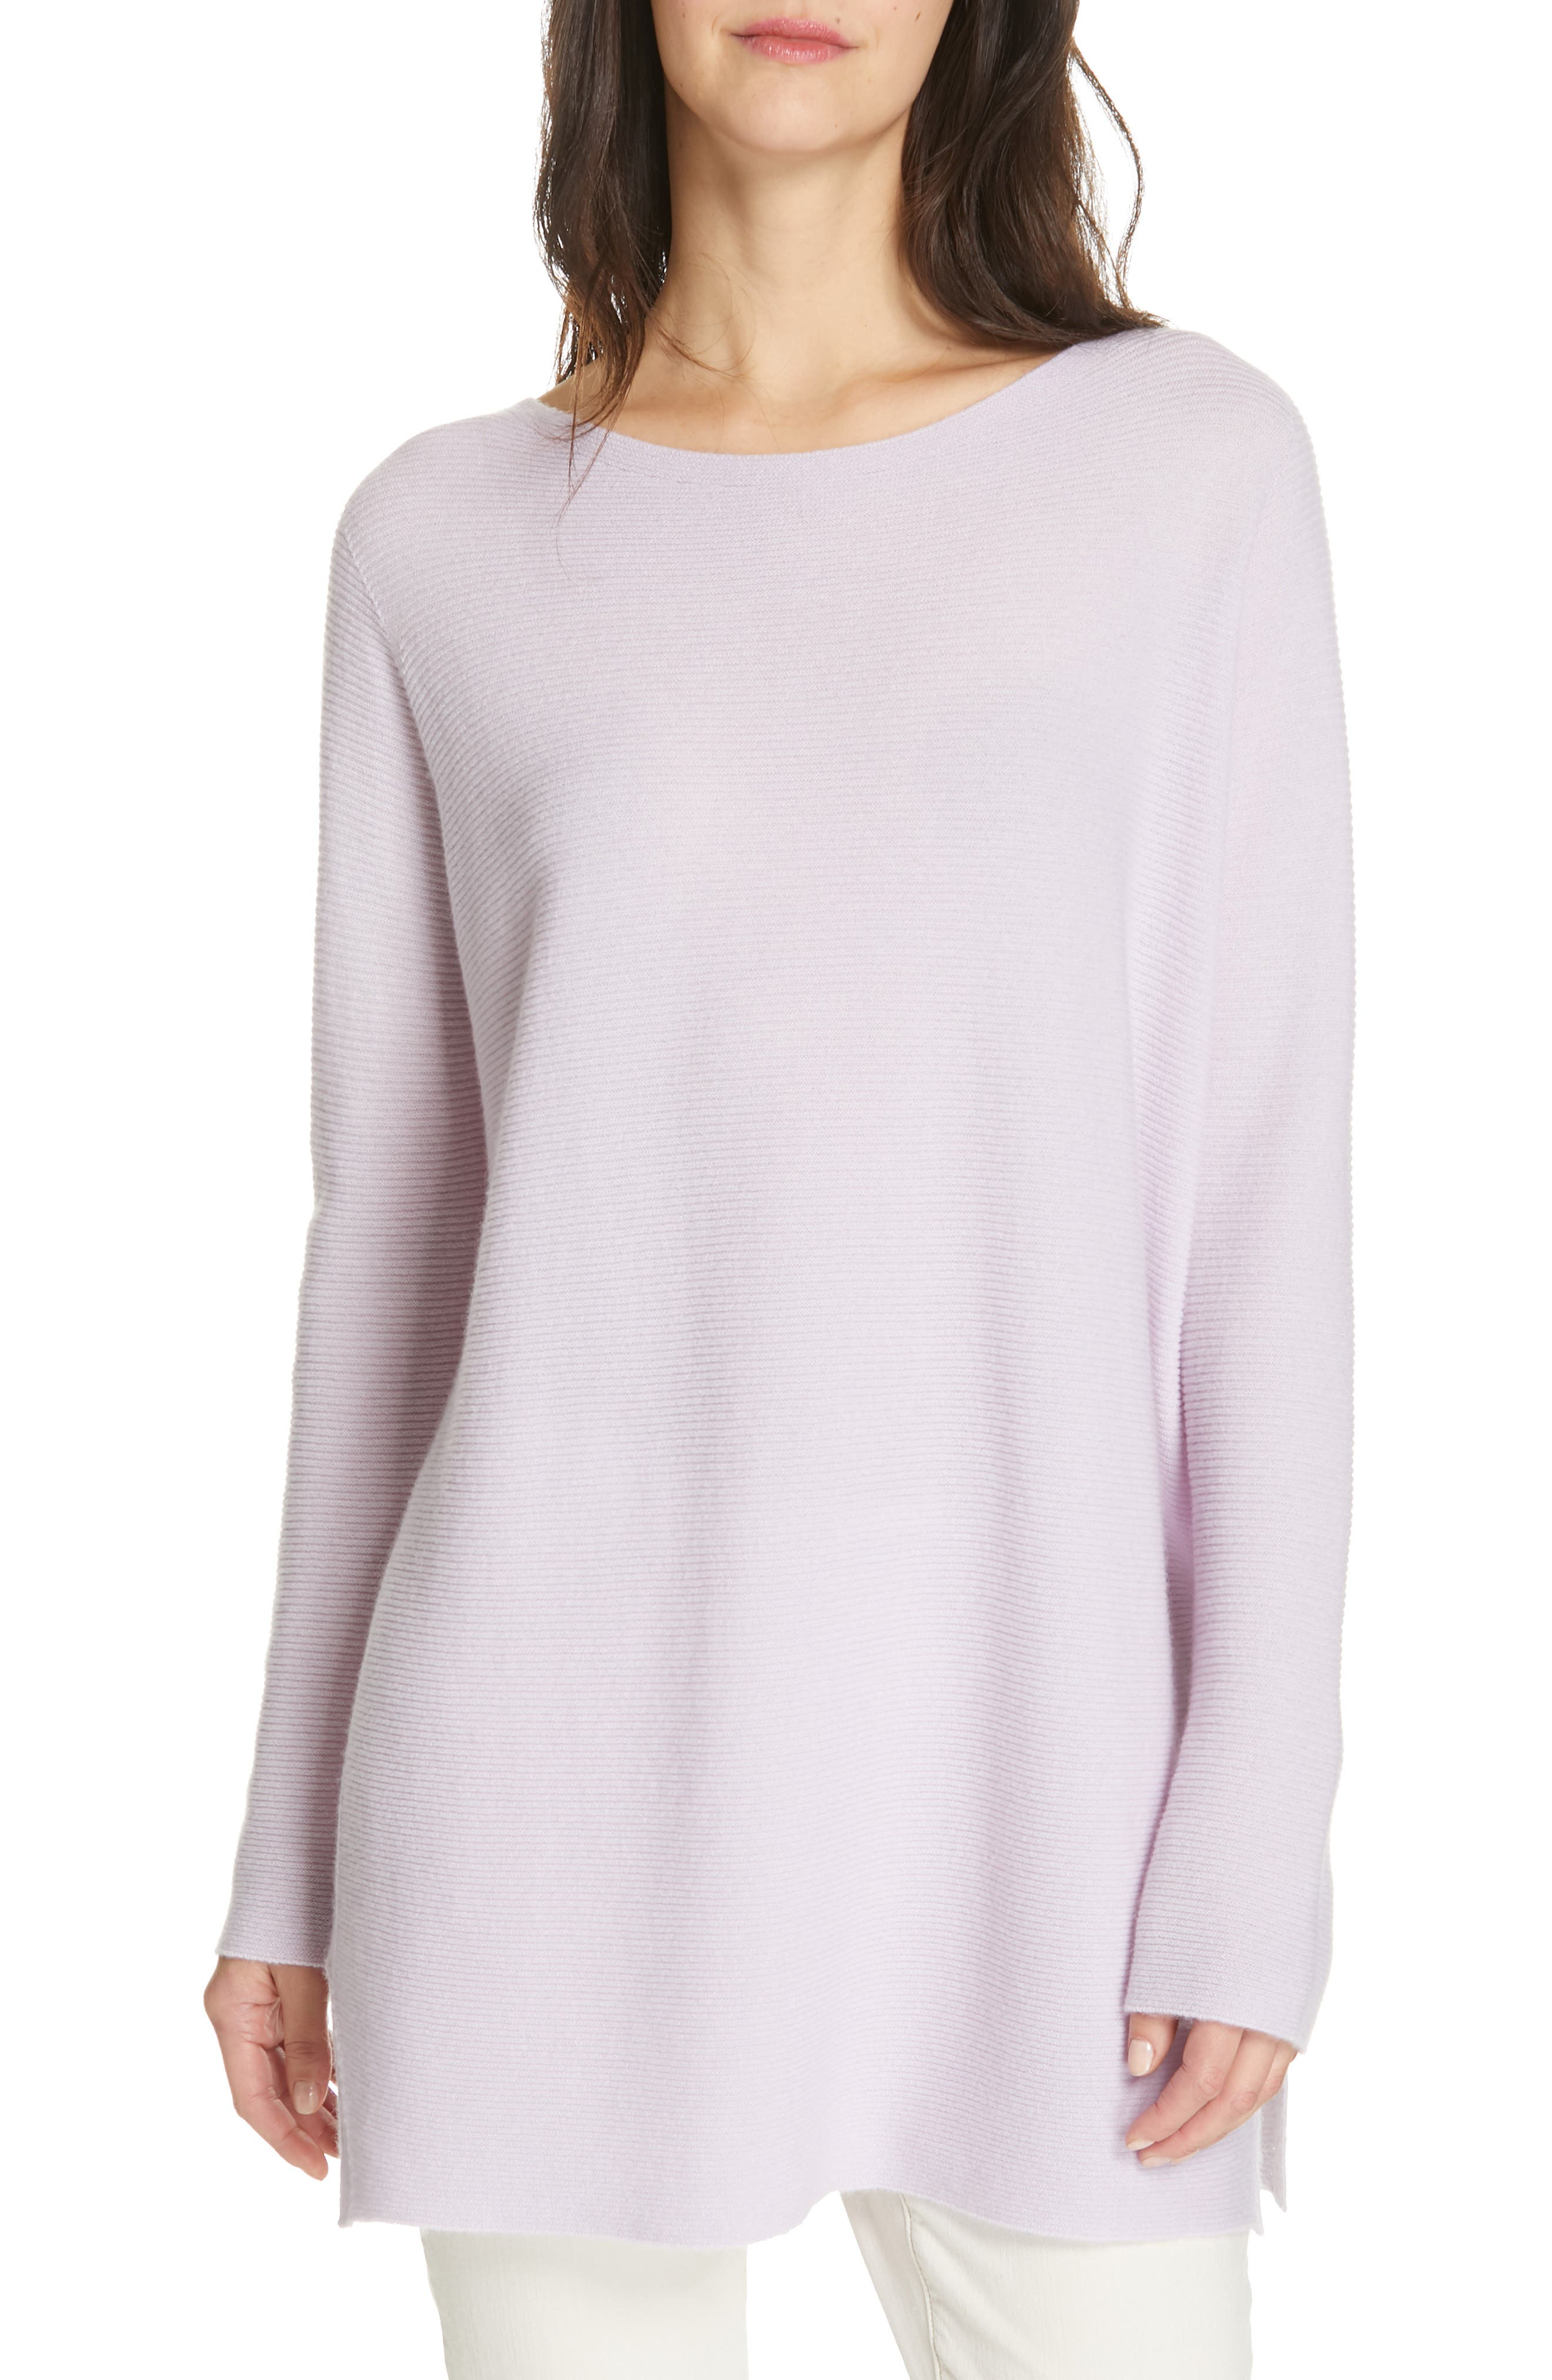 EILEEN FISHER, Bateau Neck Cashmere Tunic Sweater, Main thumbnail 1, color, MALLOW